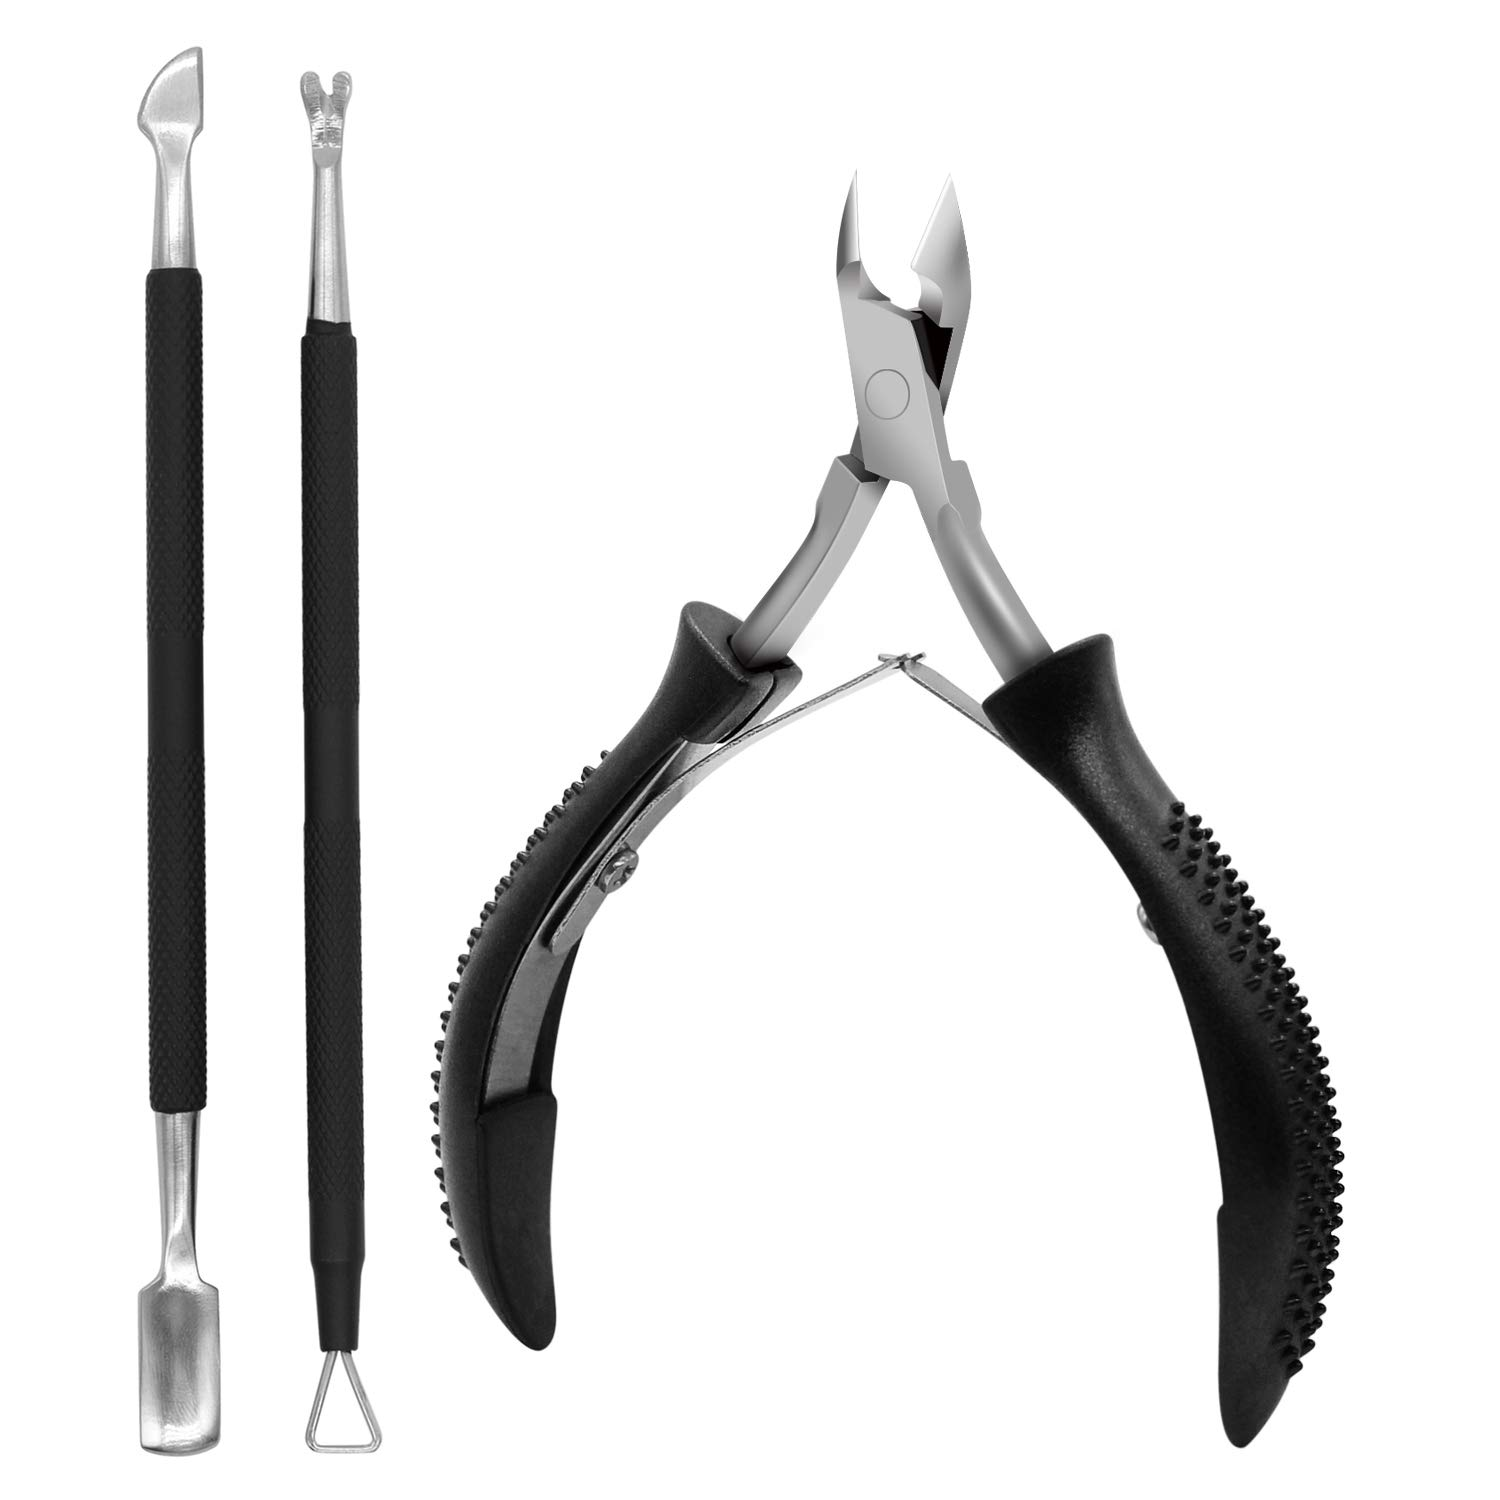 3PCS Anti-slip Handle Cuticle Trimmer with Cuticle Pusher and Triangle Cuticle Nail Pusher Peeler Scraper,Professional Stainless Steel Cuticle Nipper Set for Fingernails Toenails: Beauty